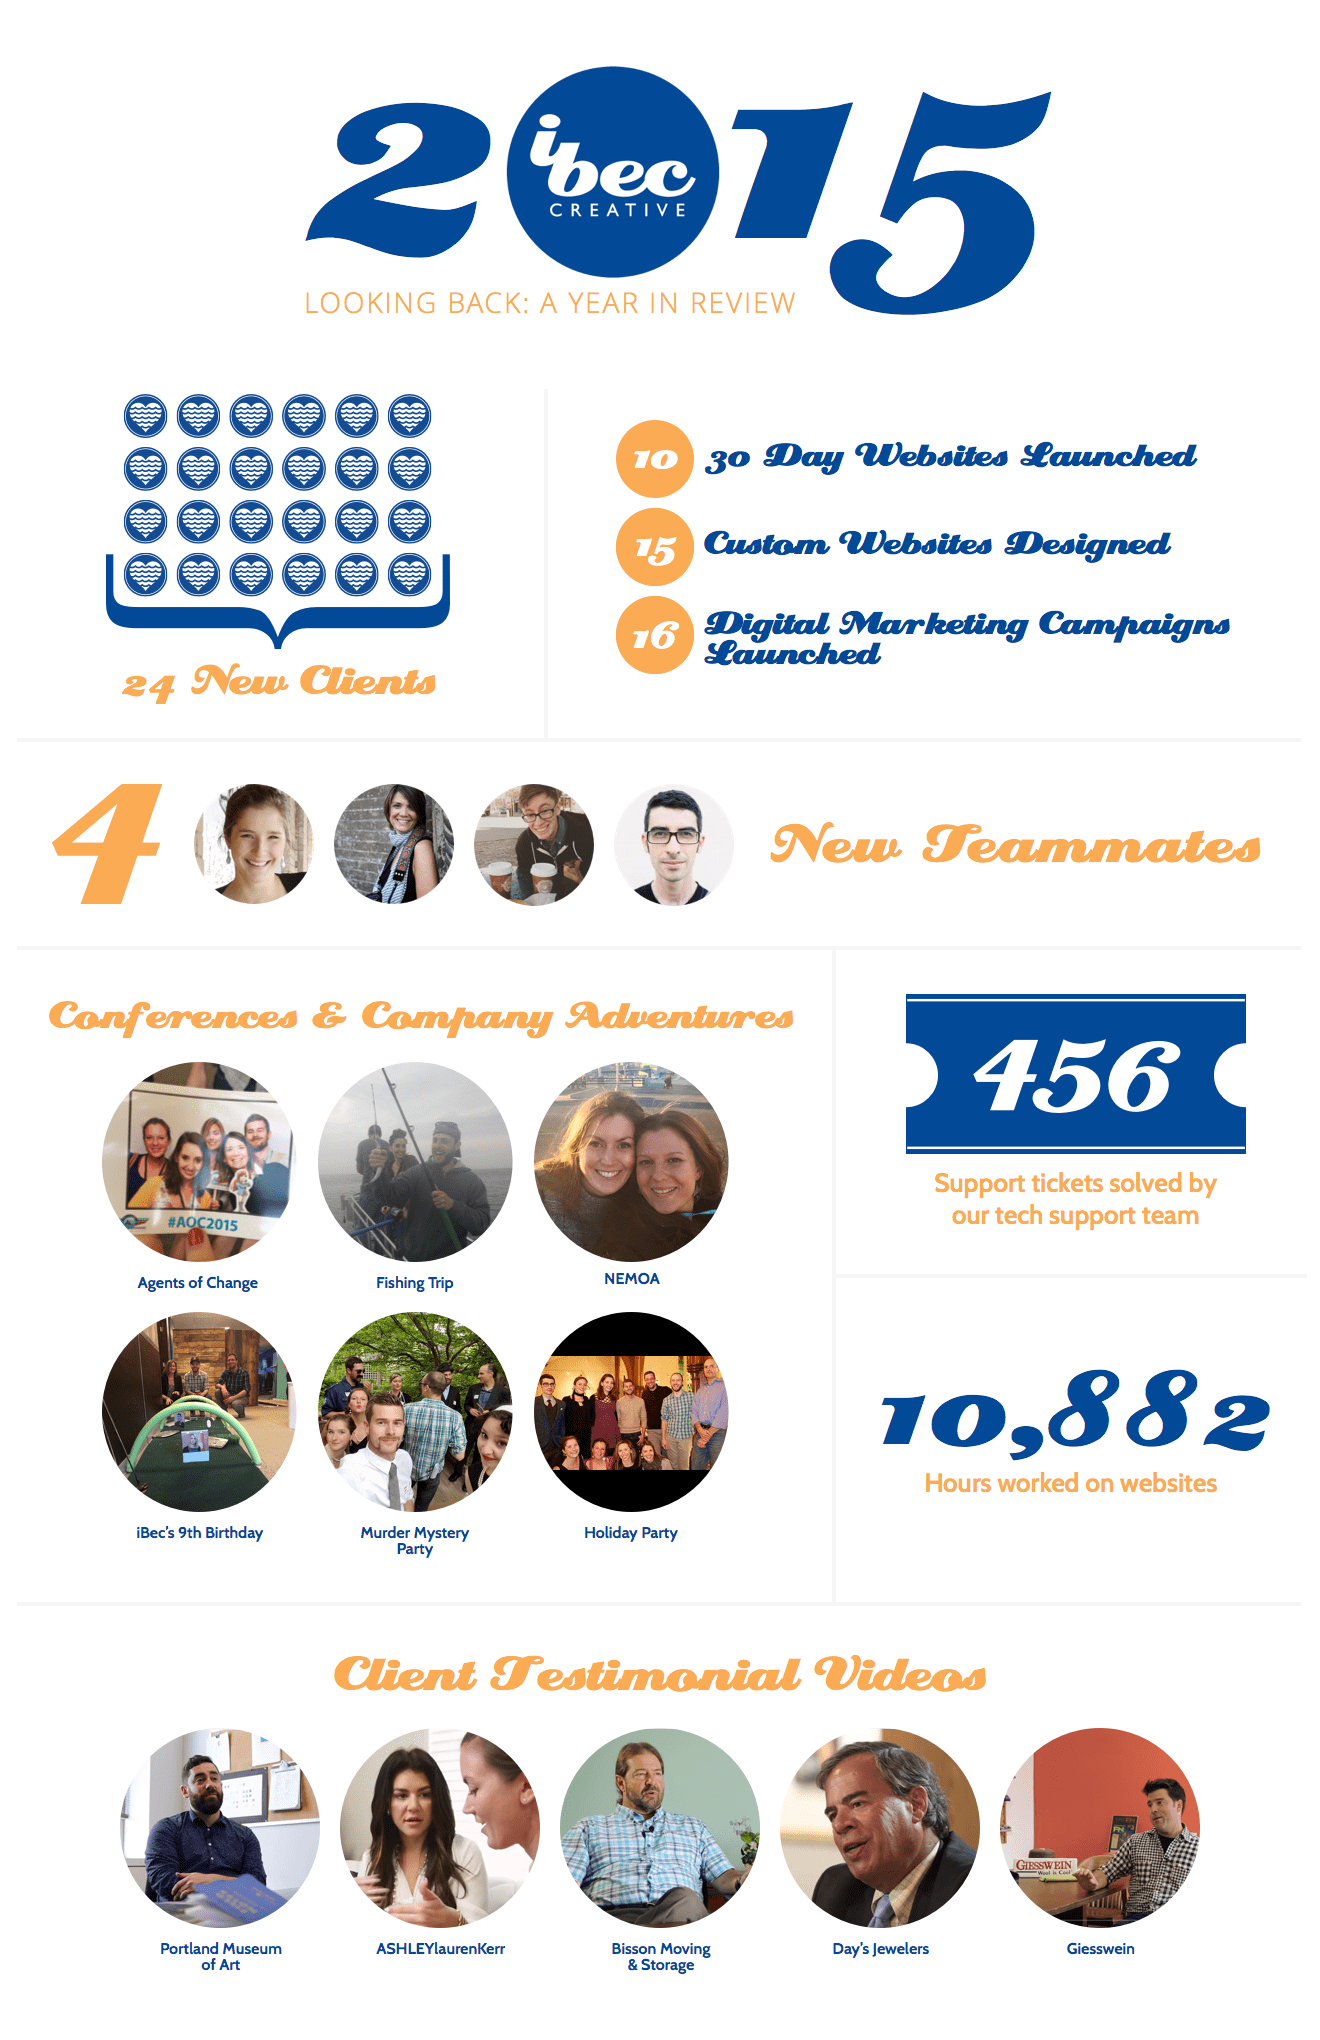 2015 Year in Review Infographic: 24 new clients, 10 30-day websites launched, 15 custom websites designed, 16 digital marketing campaigns launched, 4 new teammates, 6 conferences and company adventures, 456 support tickets solved, and 10,882 hours worked onwebsites